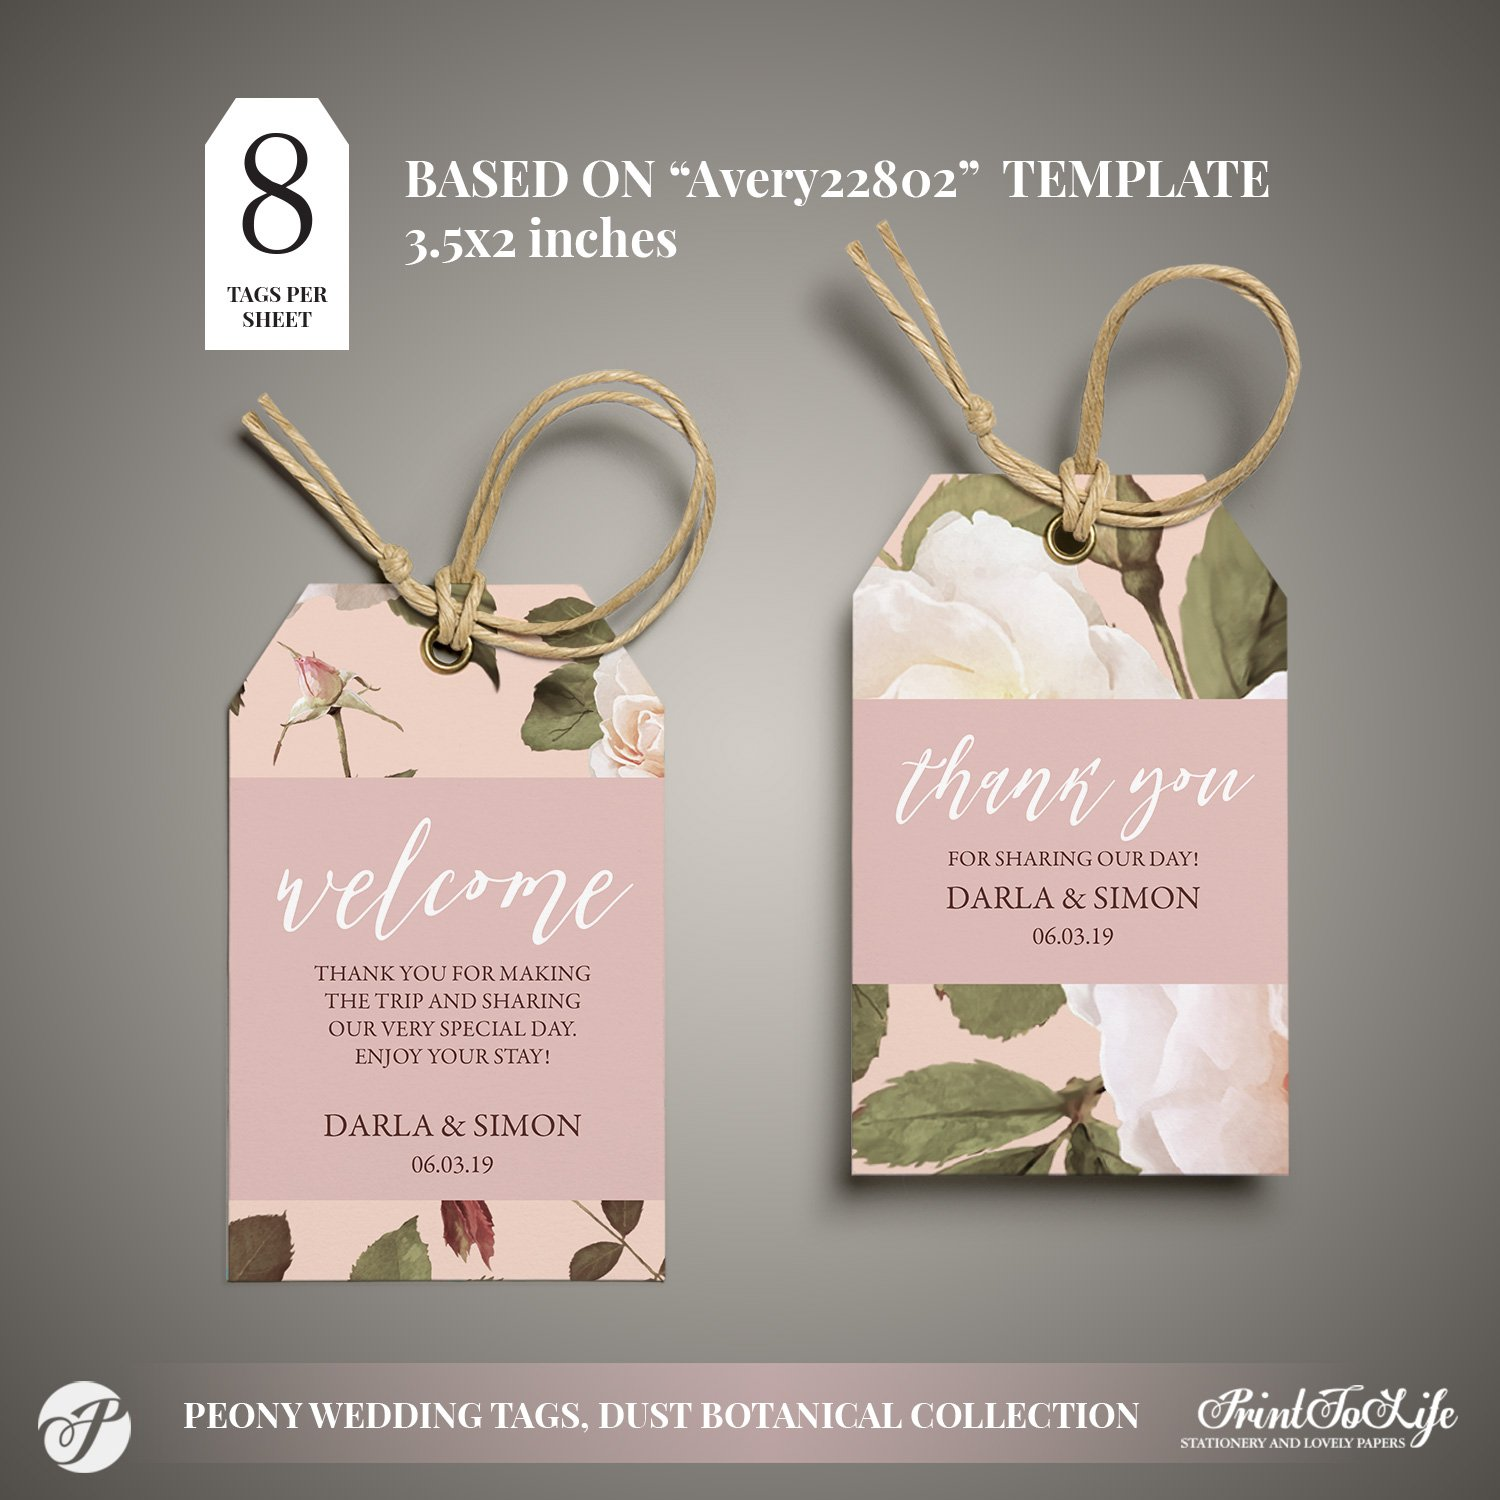 Peony Wedding Favor Tags by Printolife